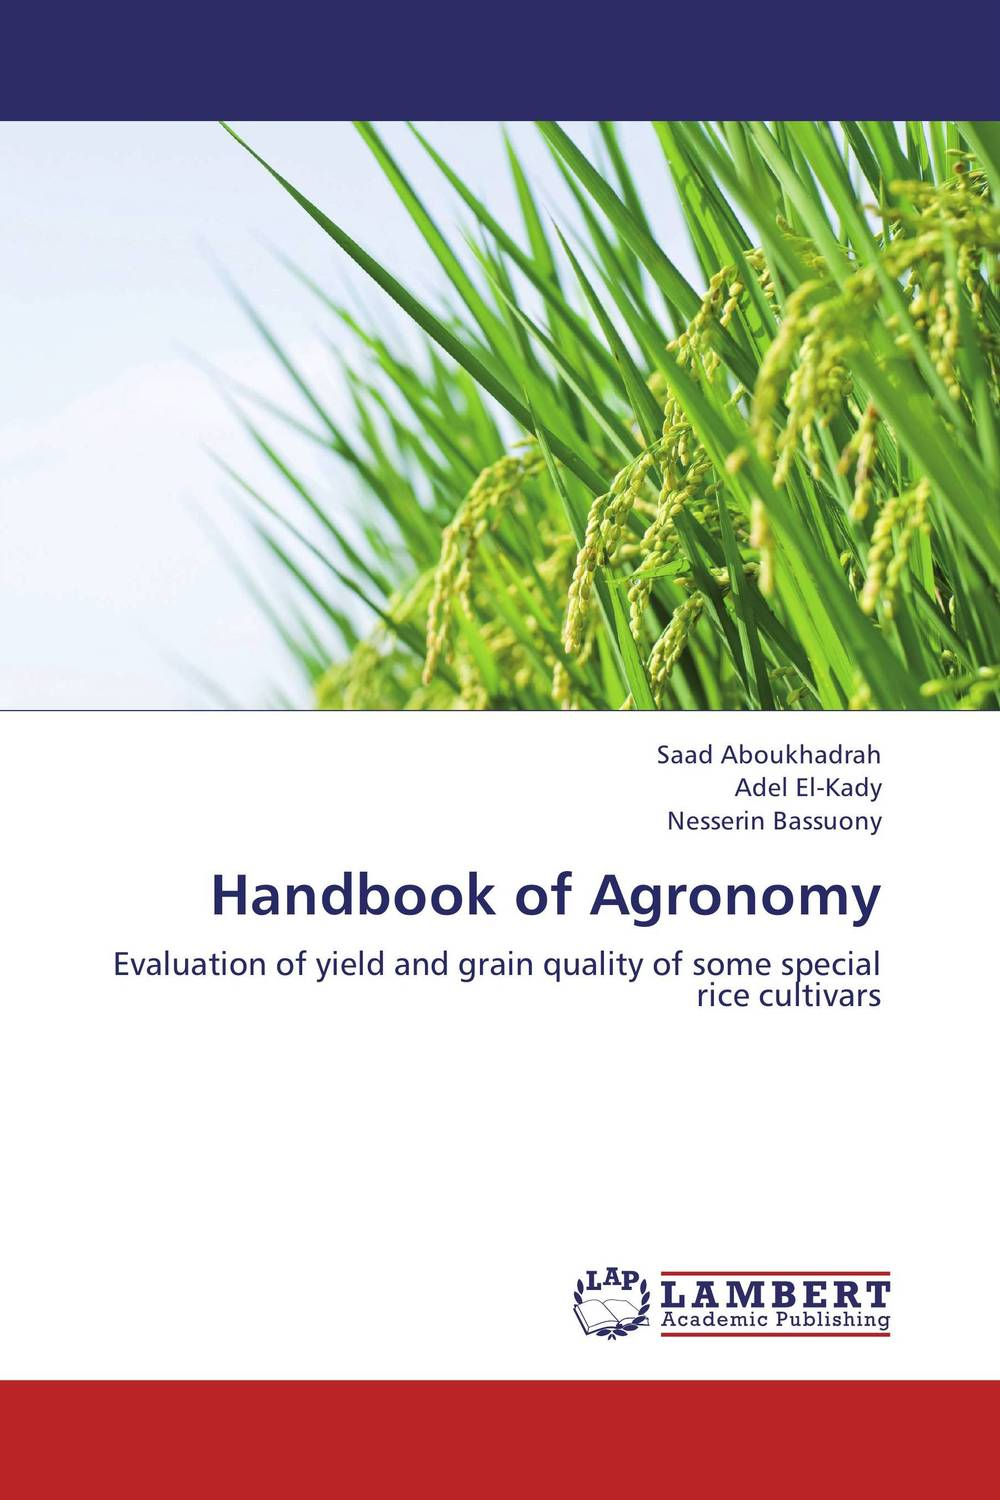 Handbook of Agronomy дорожная косметичка rice grain of rice a01 032 2014